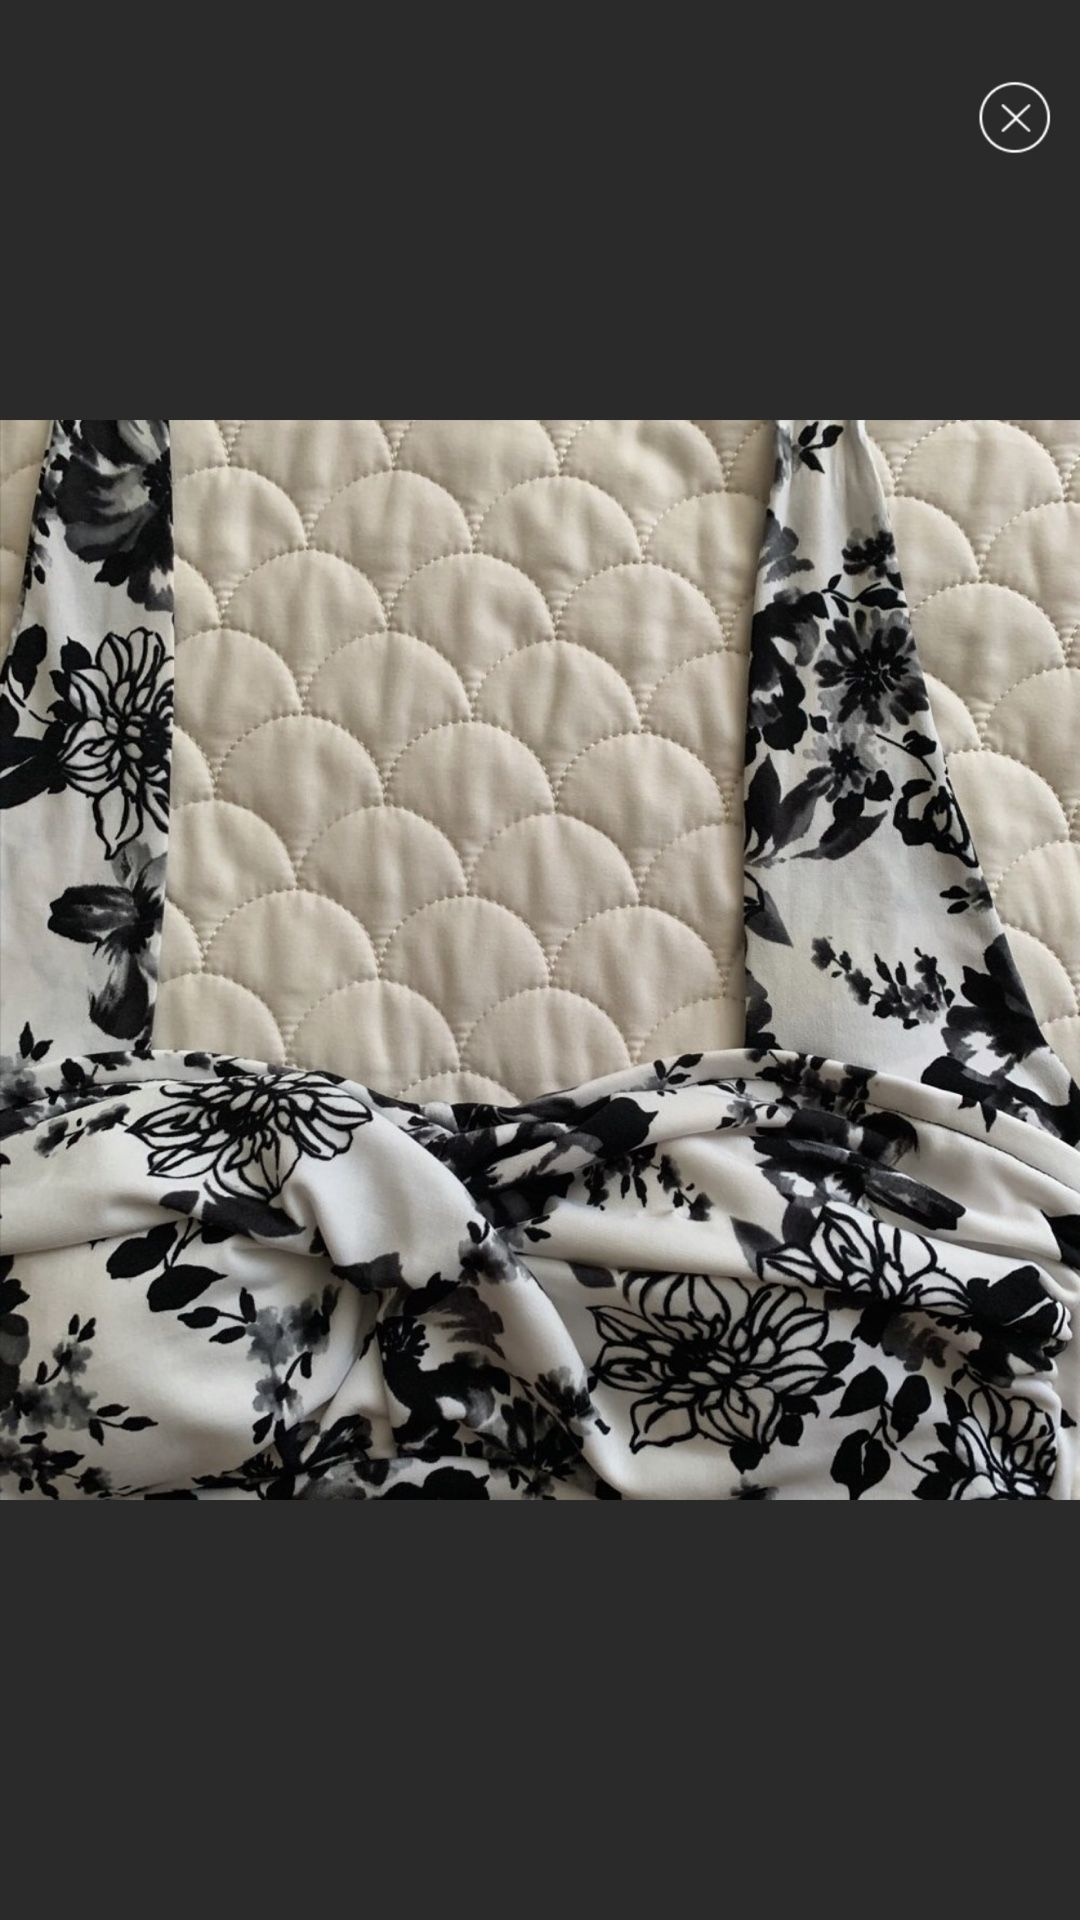 Two piece suit flowery white with black flowers very flattering by Catalina namebrand suddenly slim size medium New Like Condition